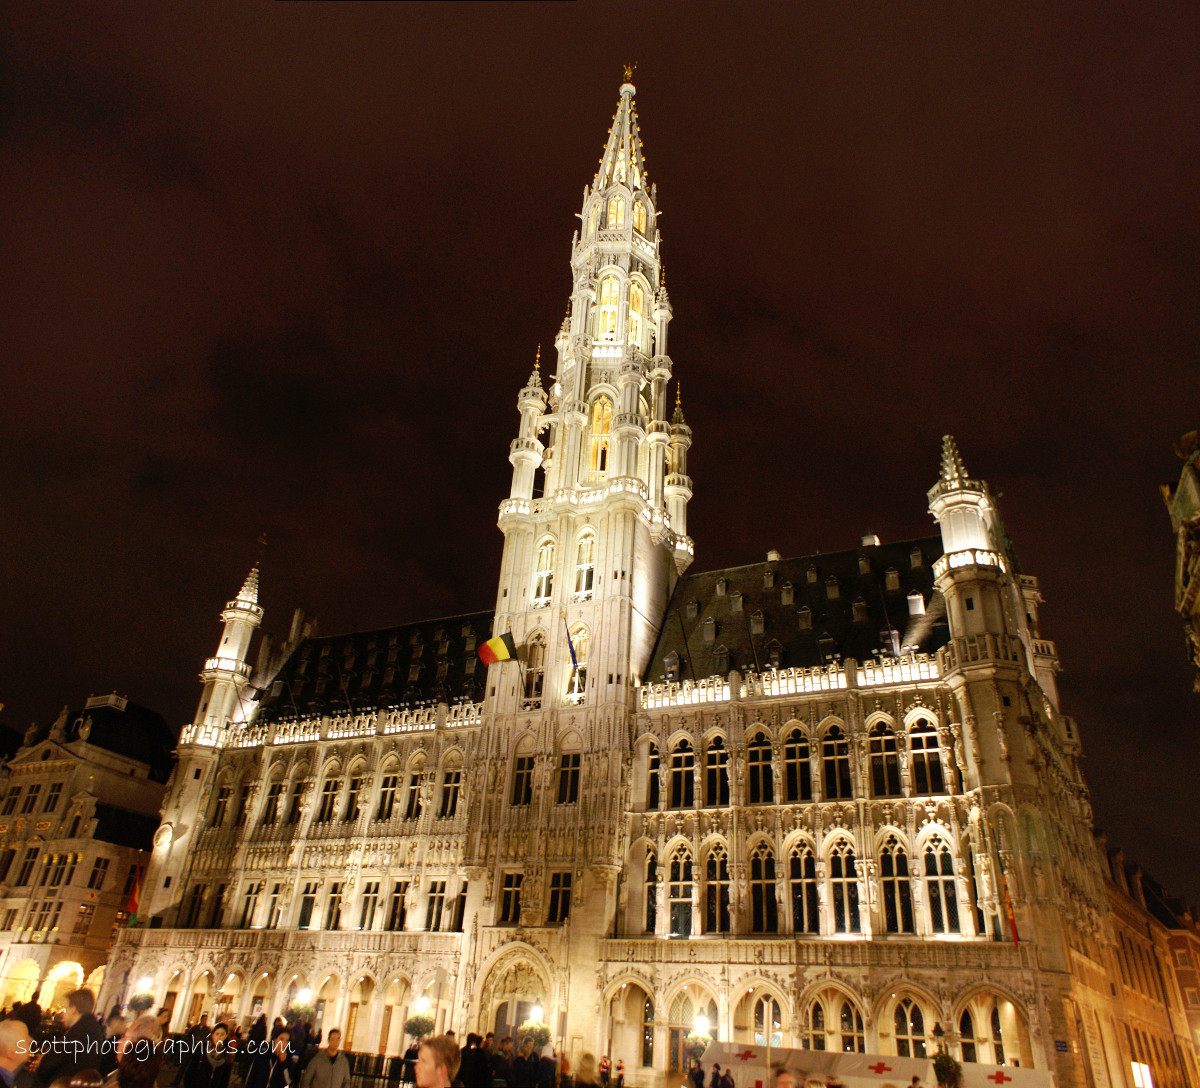 http://www.images.scottphotographics.com/shot-of-the-day/%2317/brussels-town-hall-1.jpg